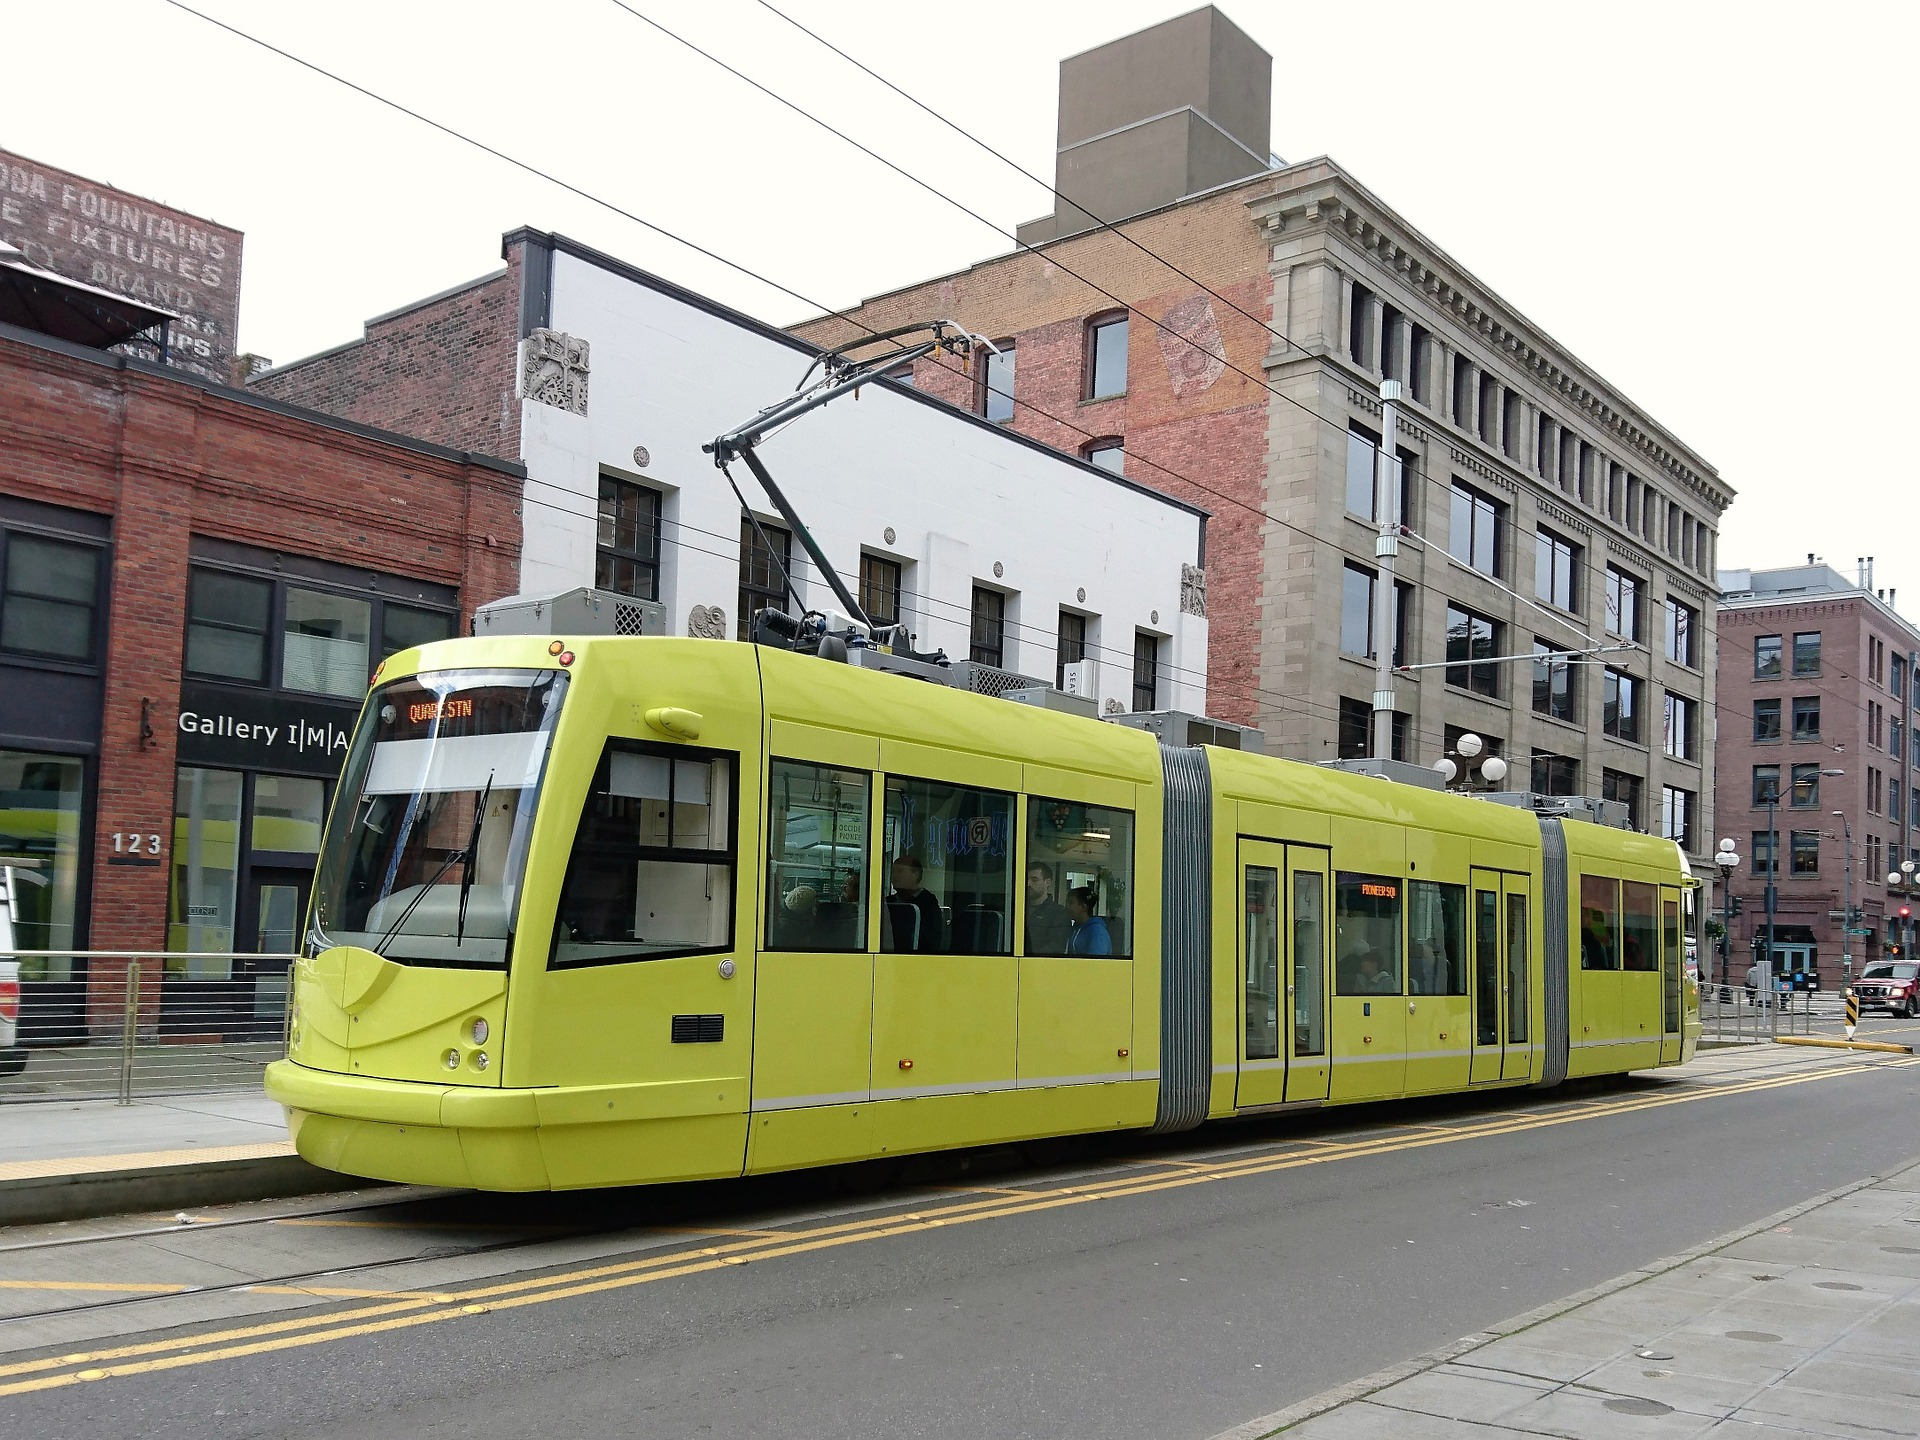 Tram in Seattle, Washington